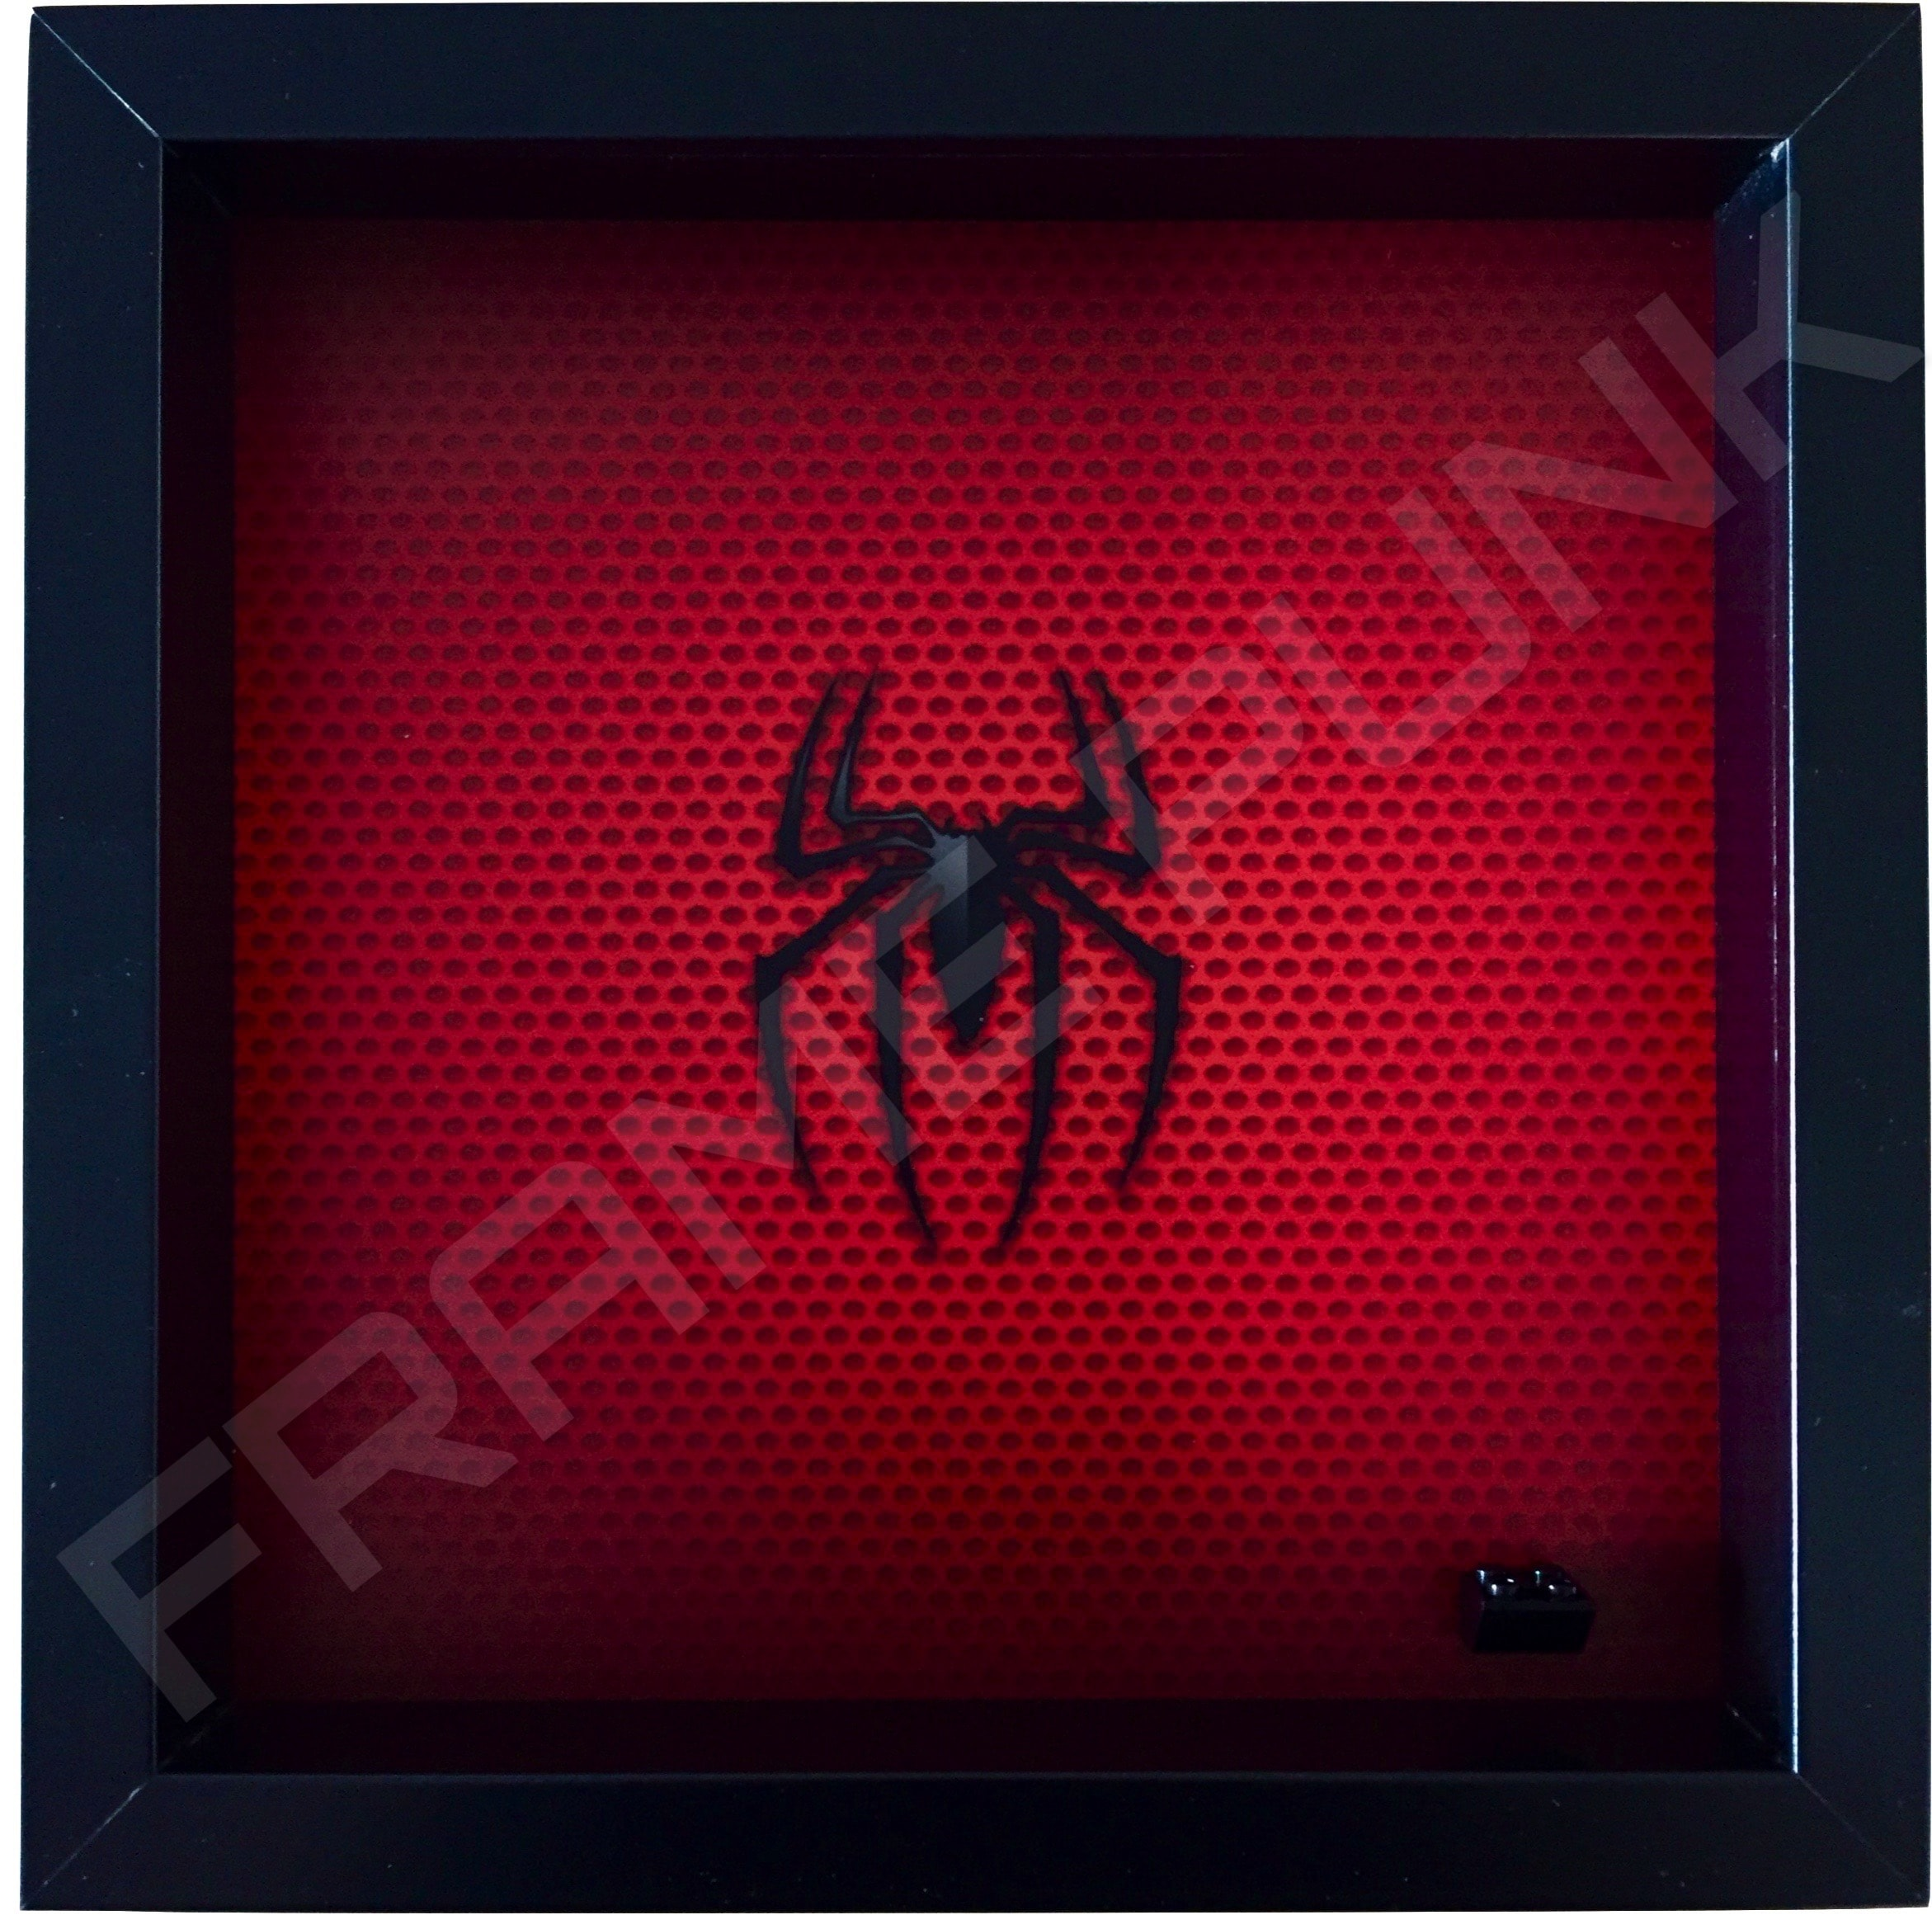 LEGO Spider-Man Minifigure display frame